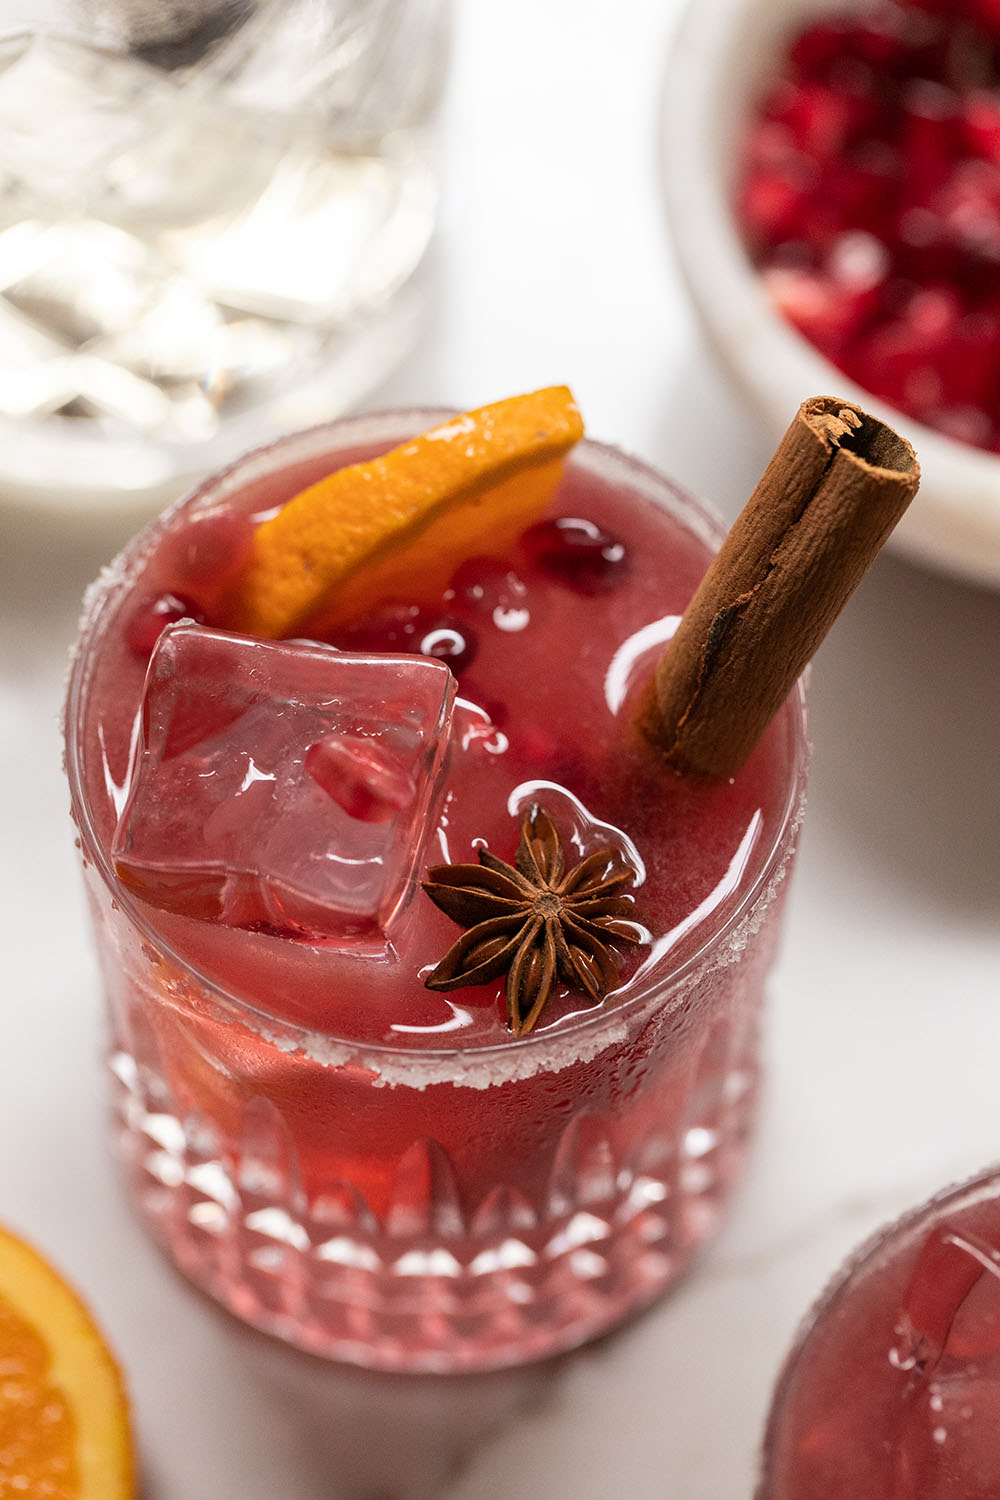 Red pomegranate margaritas with cinnamon stick, orange slice and star anise.